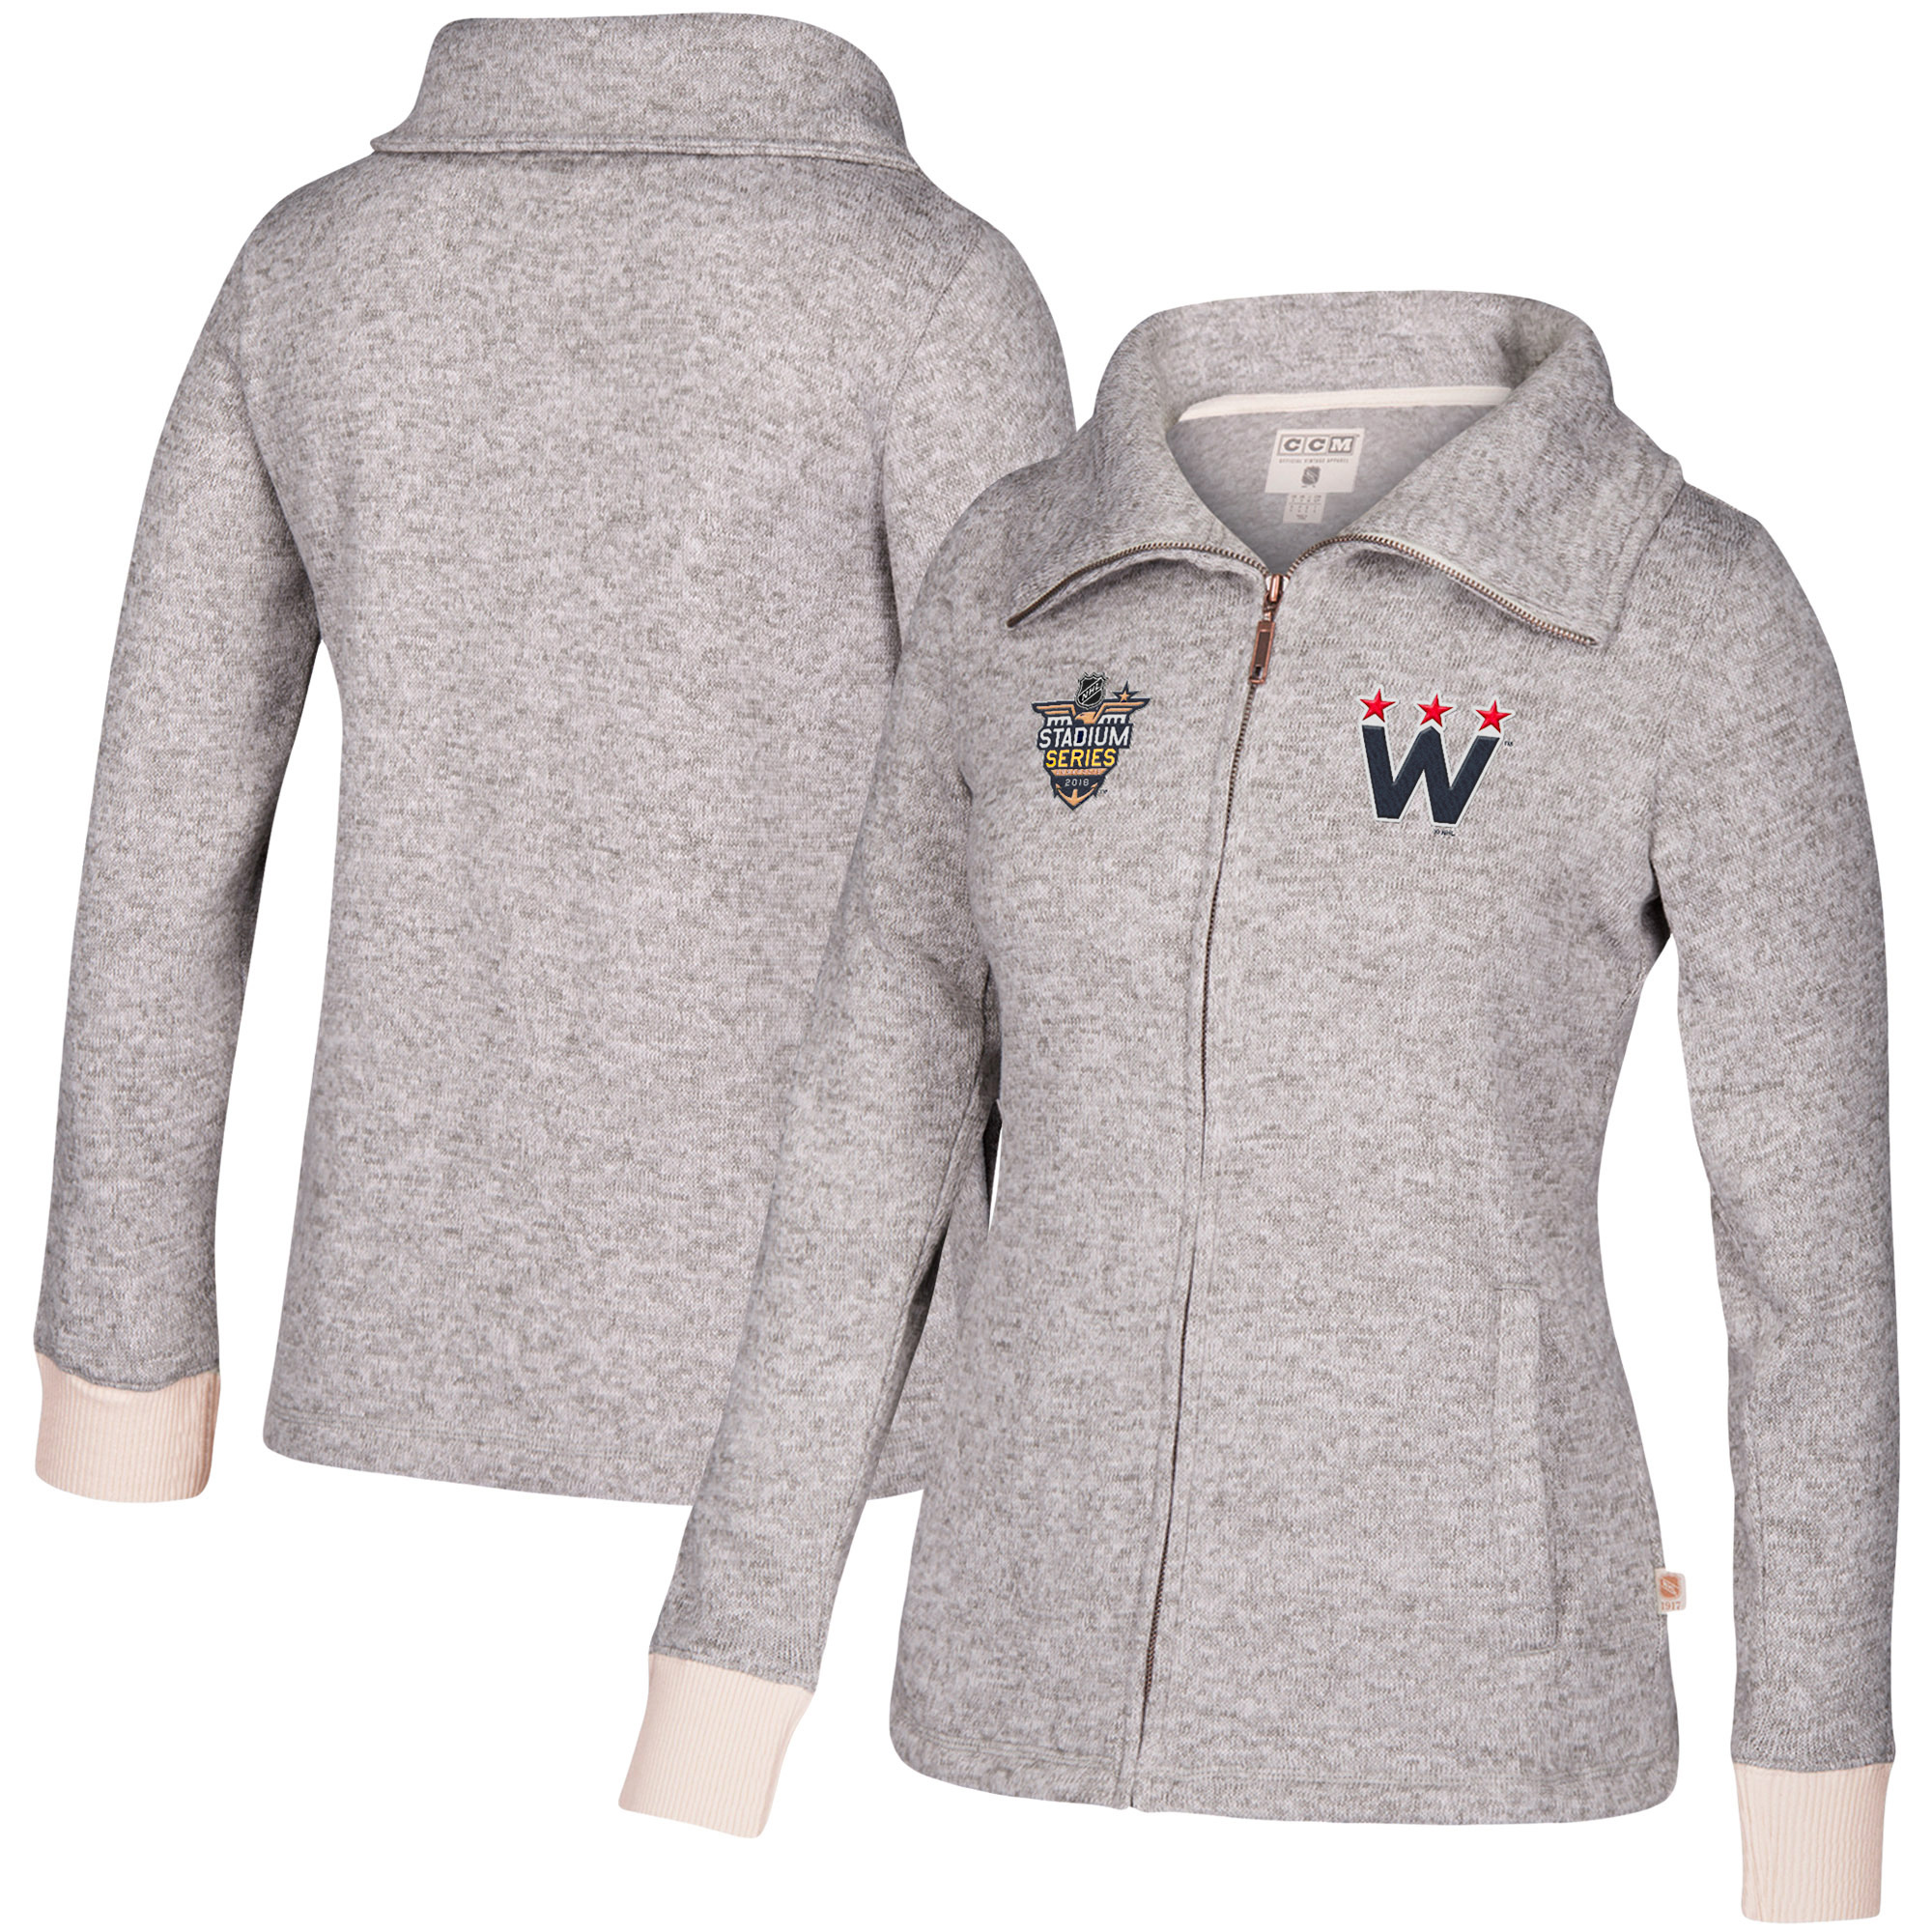 Washington Capitals CCM Women's 2018 NHL Stadium Series Full-Zip Fleece Track Jacket White by REEBOK/SPORTS LICENSED DIVISION